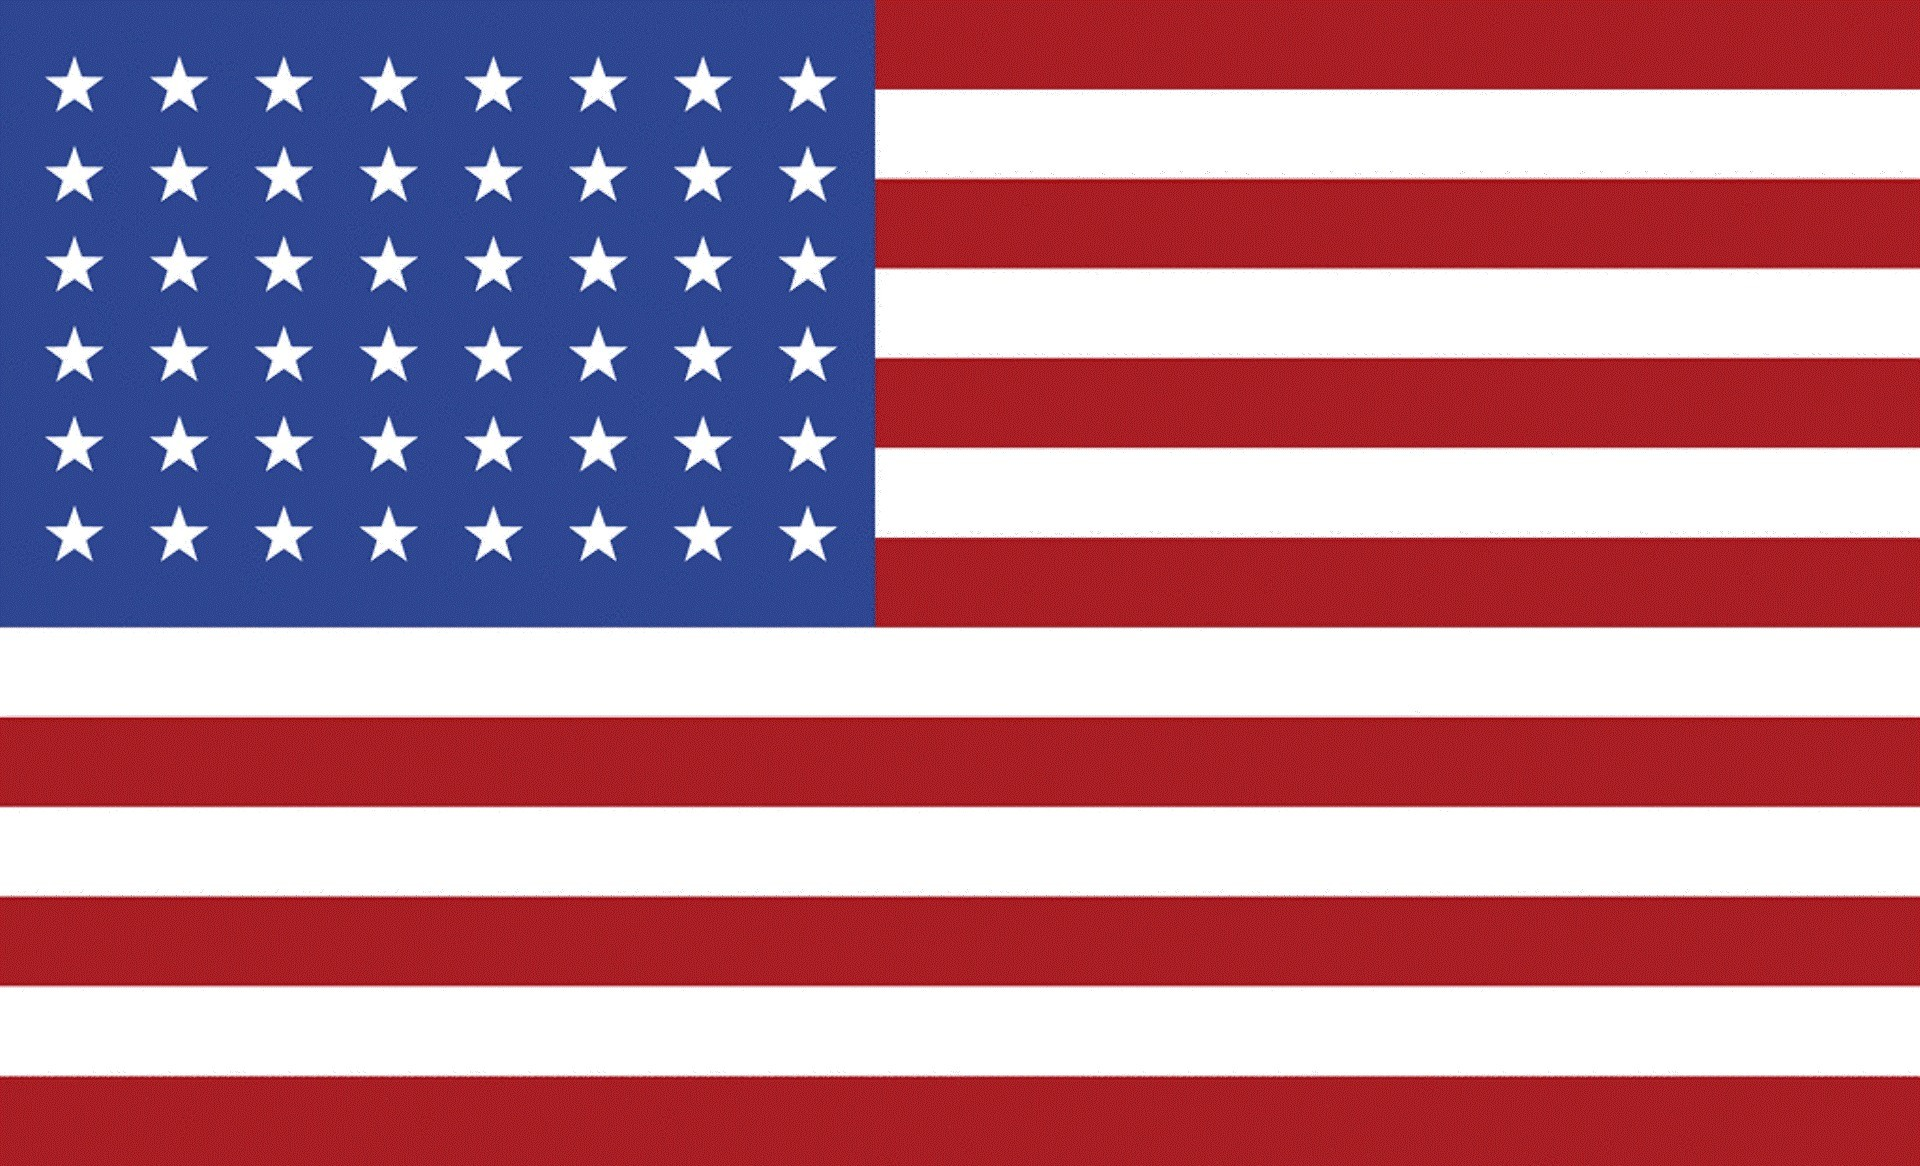 American Flag Background Images (61+ Images